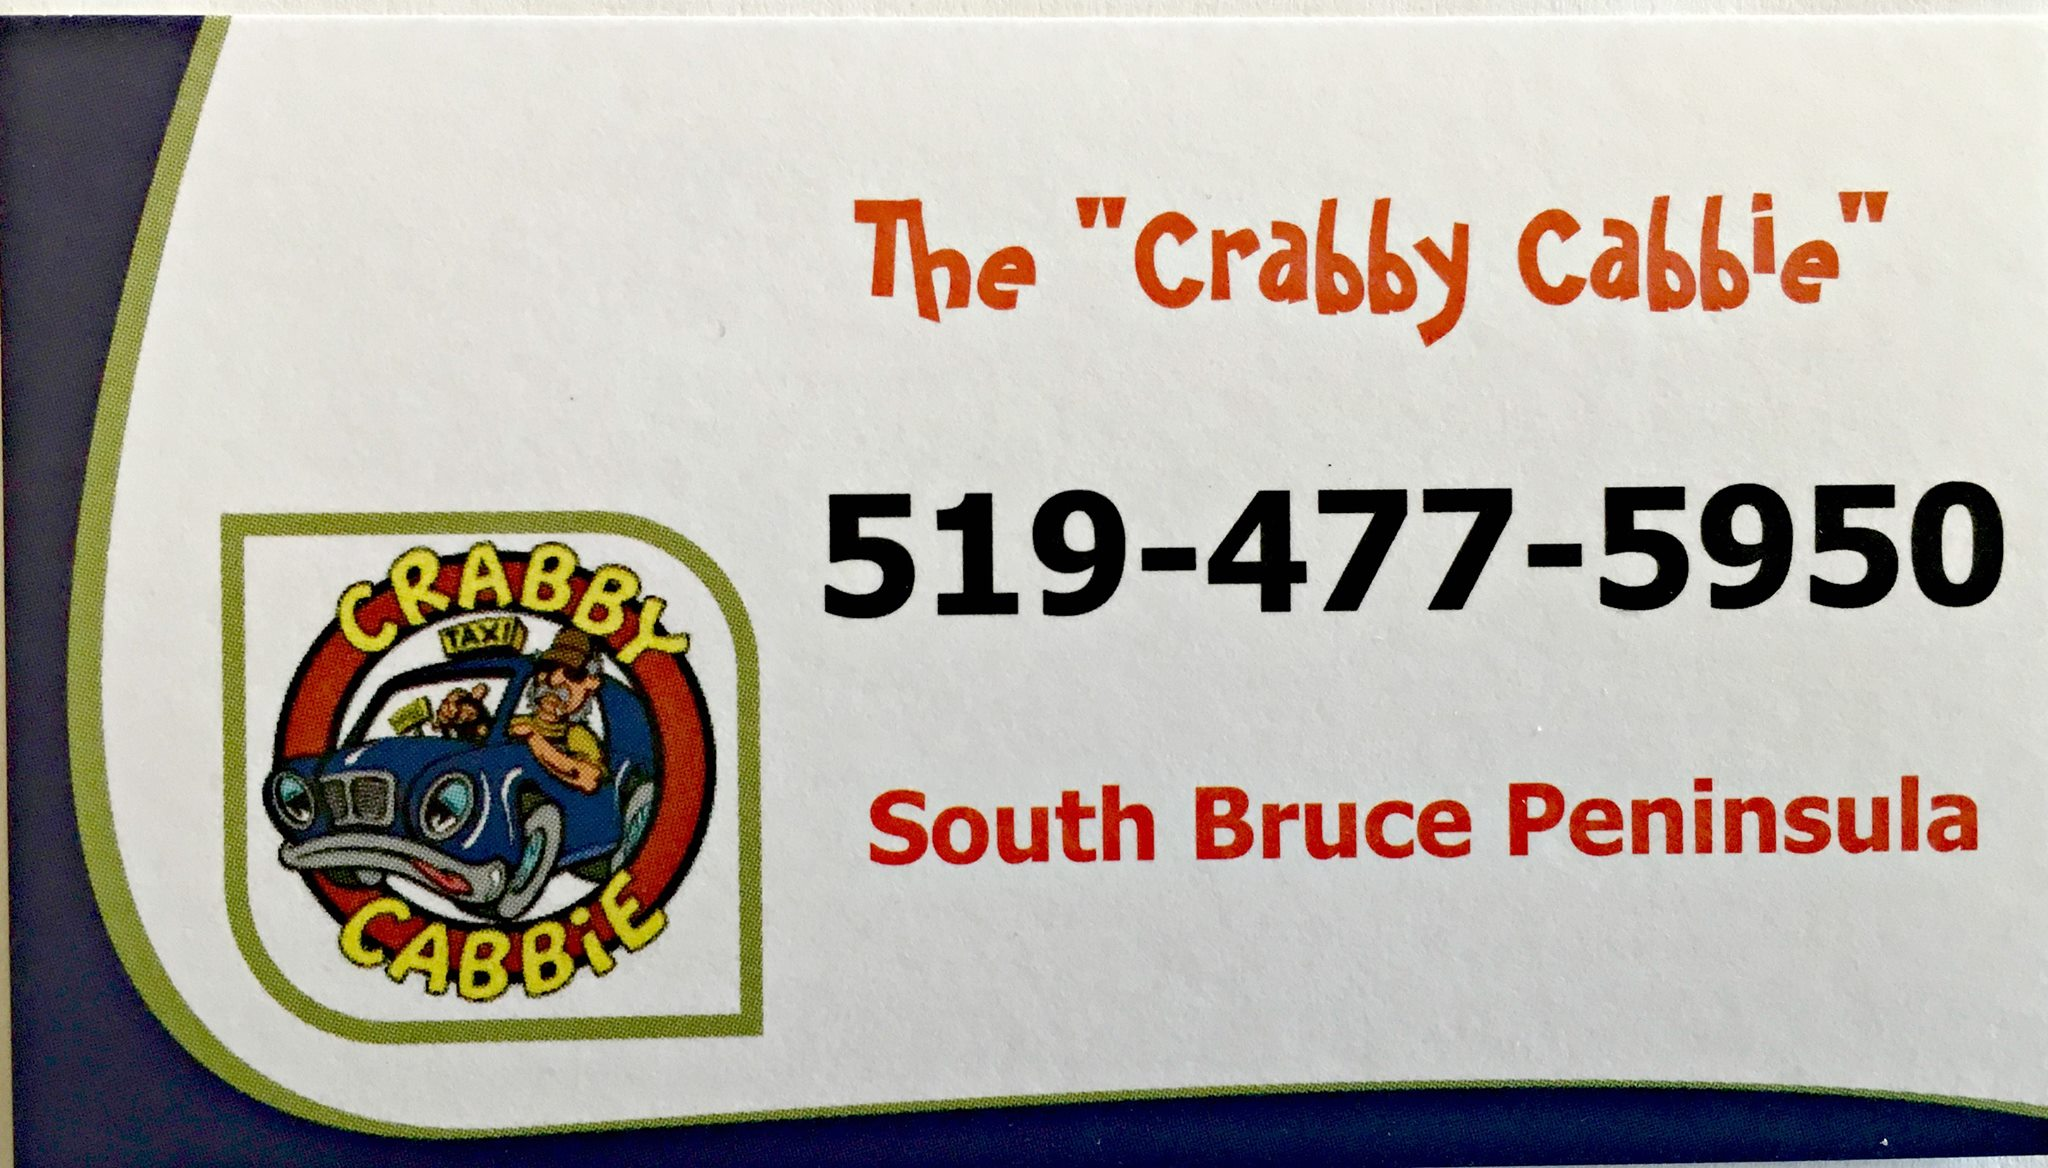 The Crabby Cabbie